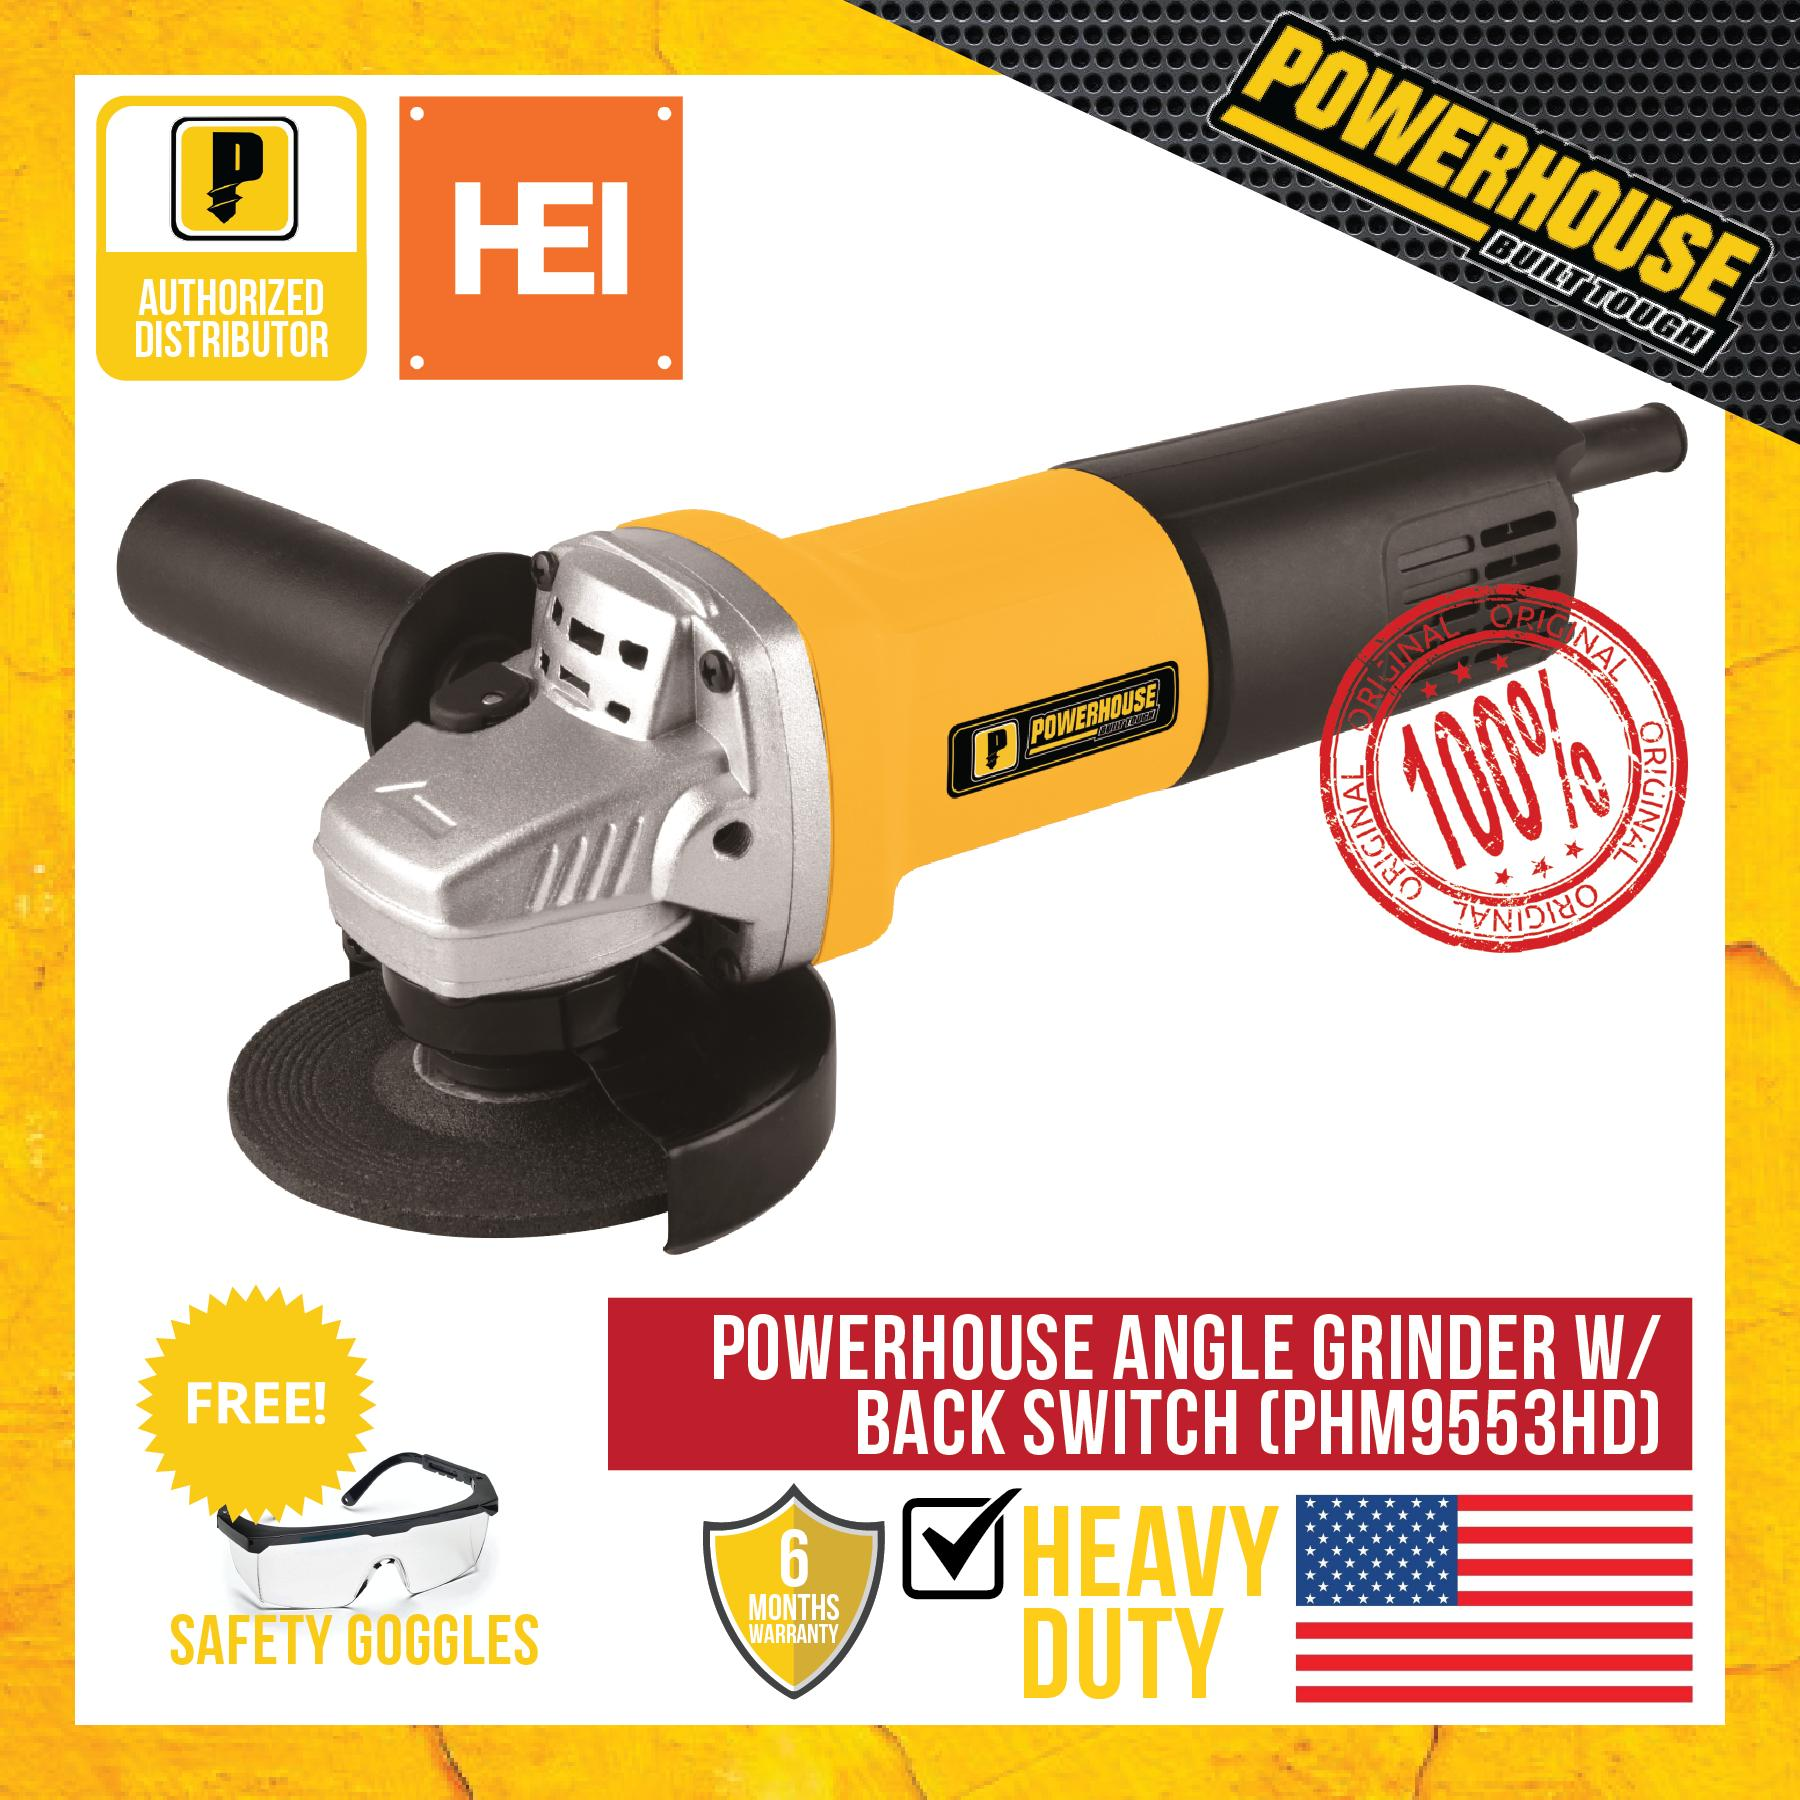 Powerhouse Angle Grinder W/ Back Switch 800W (PHM9553HD) - FREE SAFETY  GOGGLES